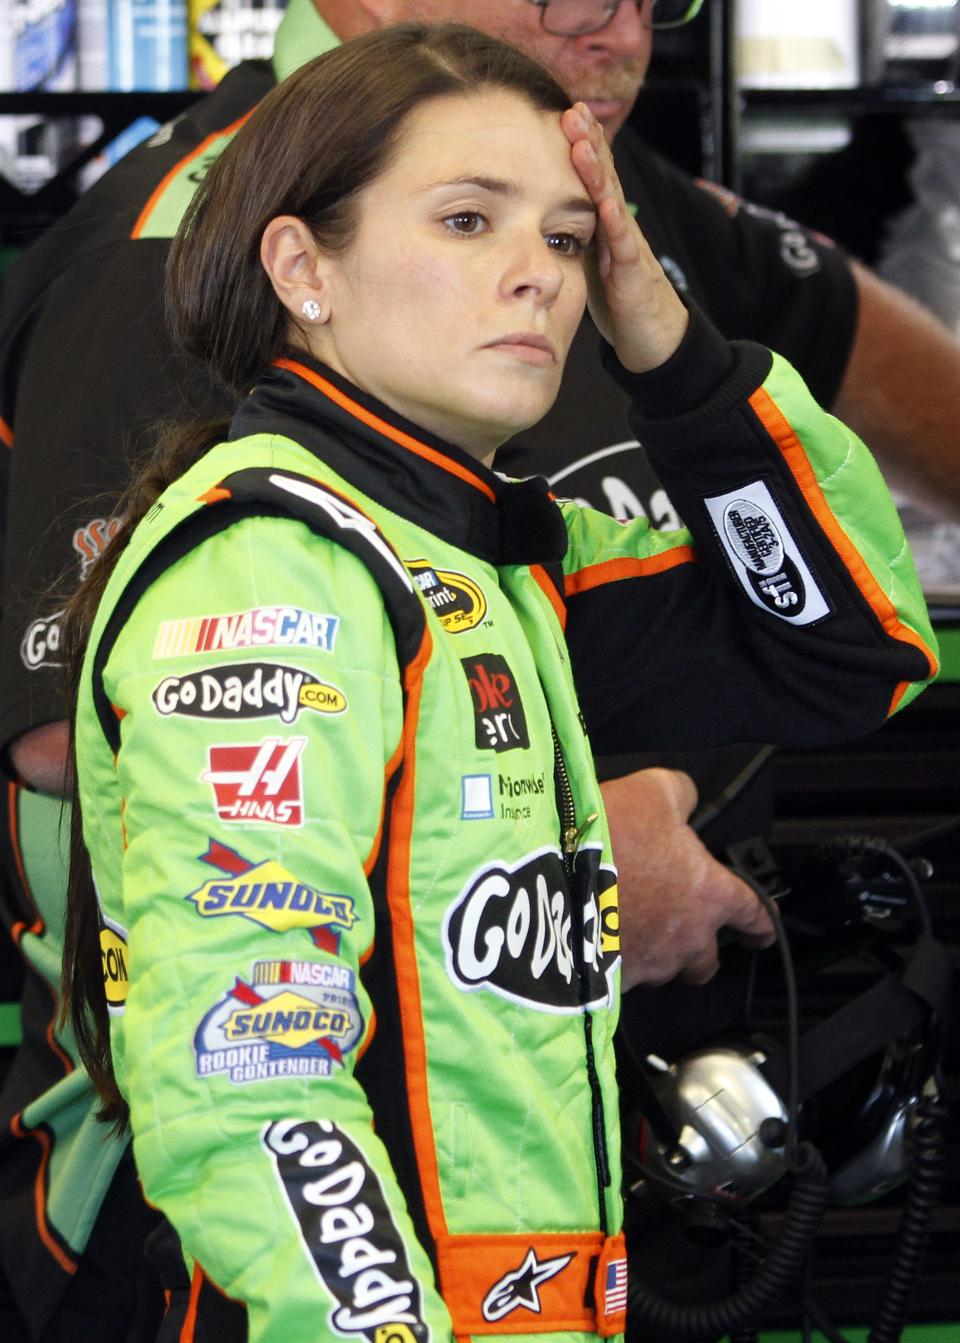 Driver Danica Patrick takes a break during practice for the Quaker State 400 NASCAR Sprint Cup series auto race at Kentucky Speedway in Sparta, Ky., Friday, June 28, 2013. (AP Photo/James Crisp)